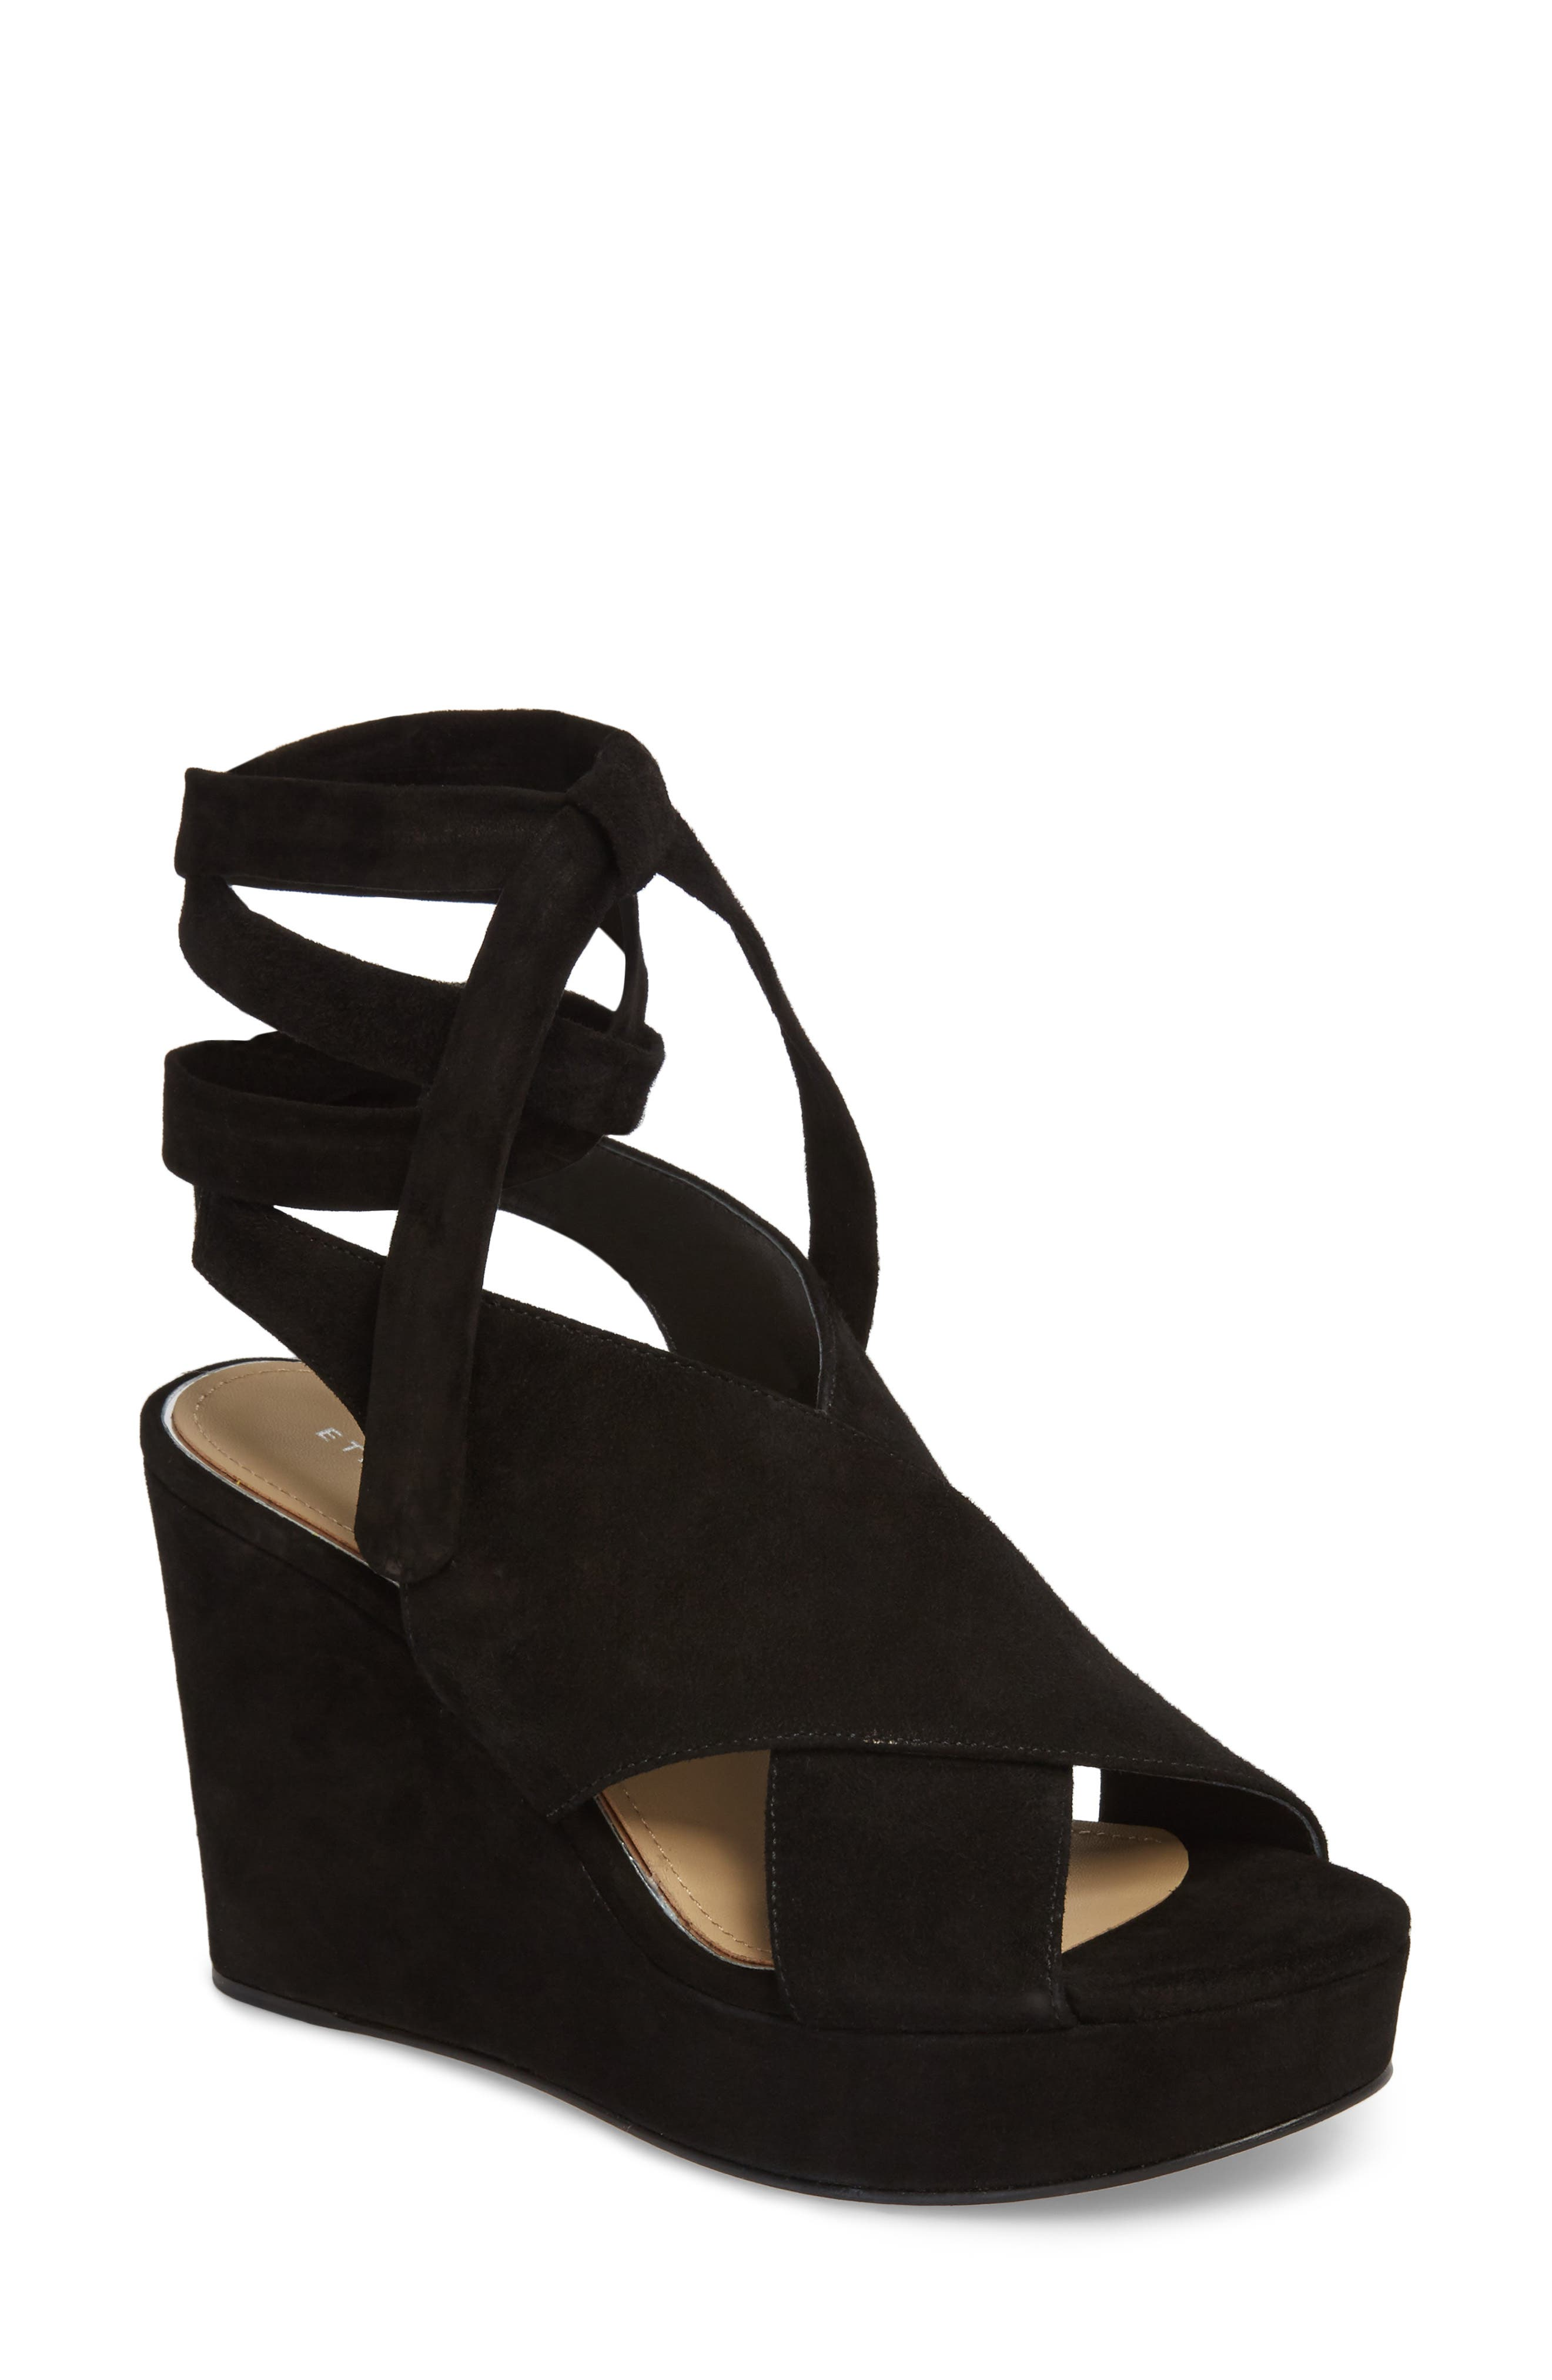 Dominica Platform Wedge Sandal,                             Main thumbnail 1, color,                             BLACK SUEDE